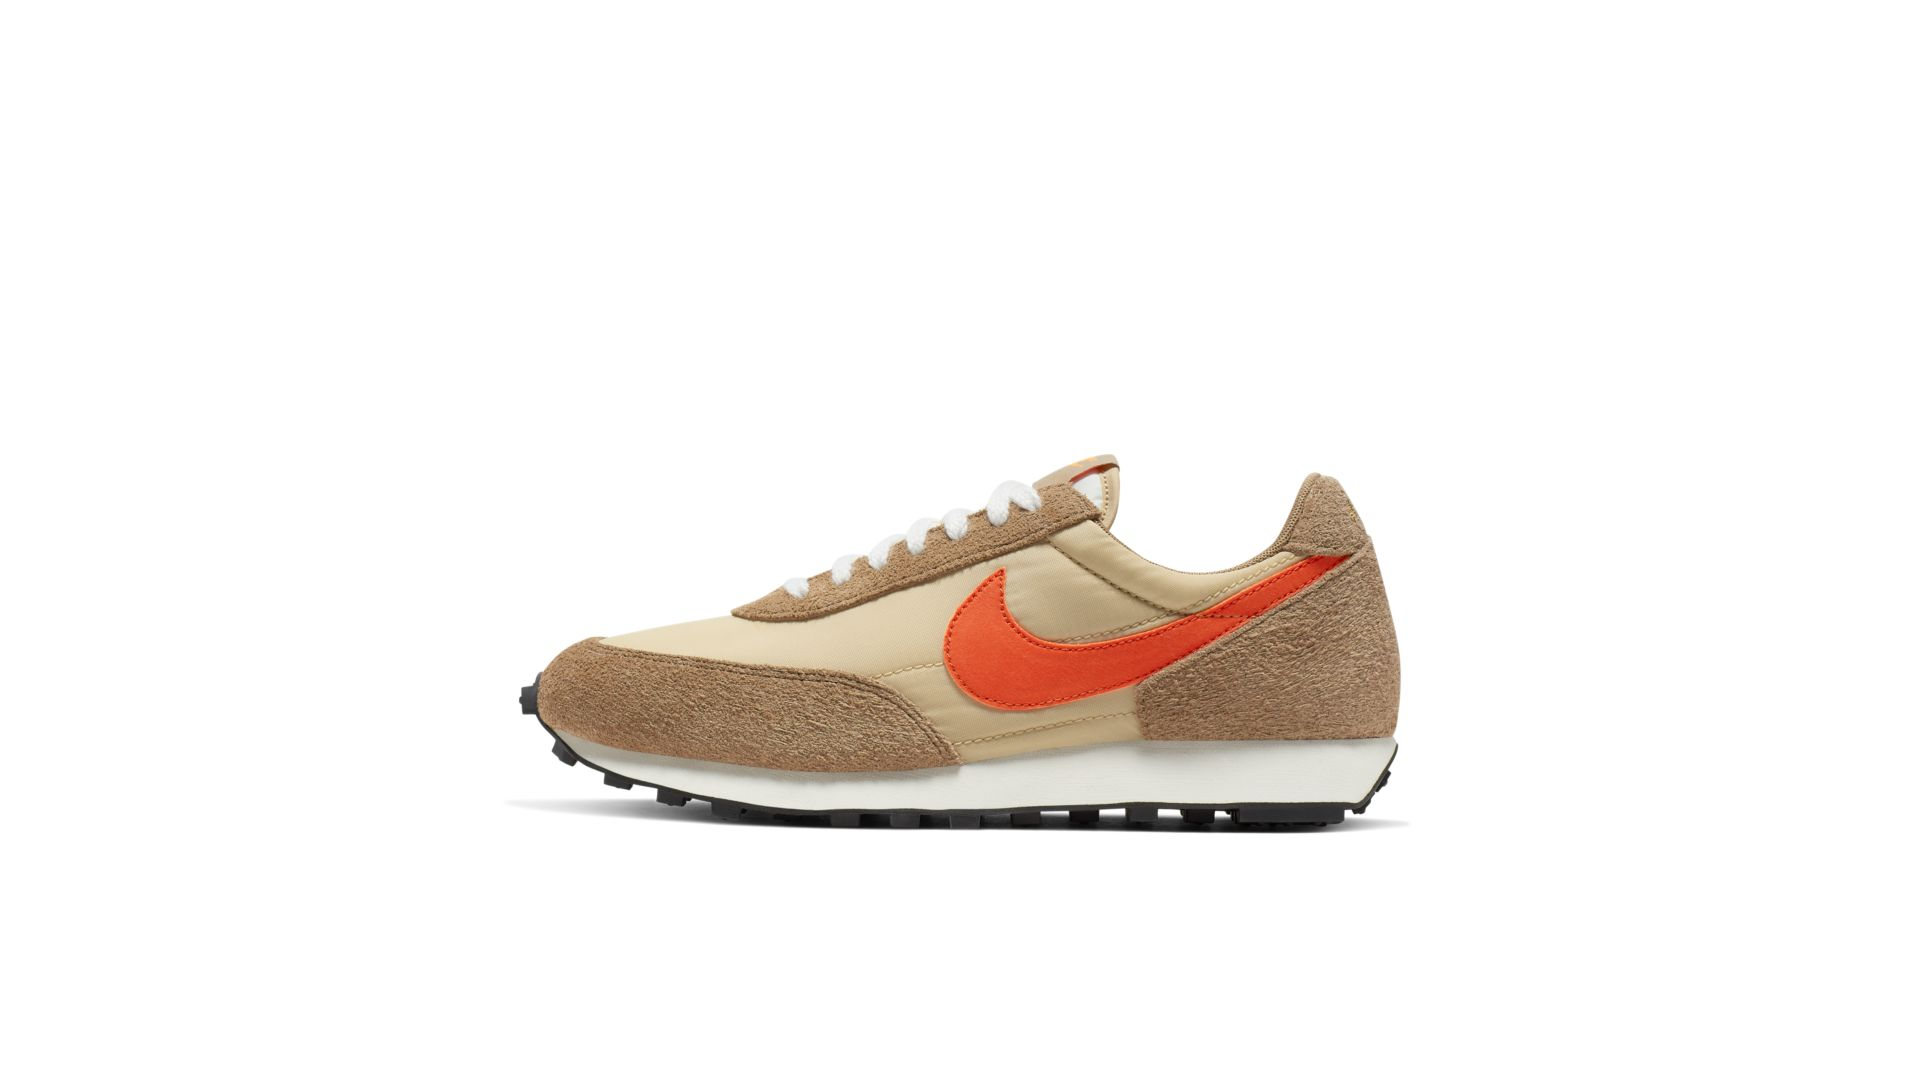 Nike Daybreak Vegas Gold College Orange (BV7725-700)